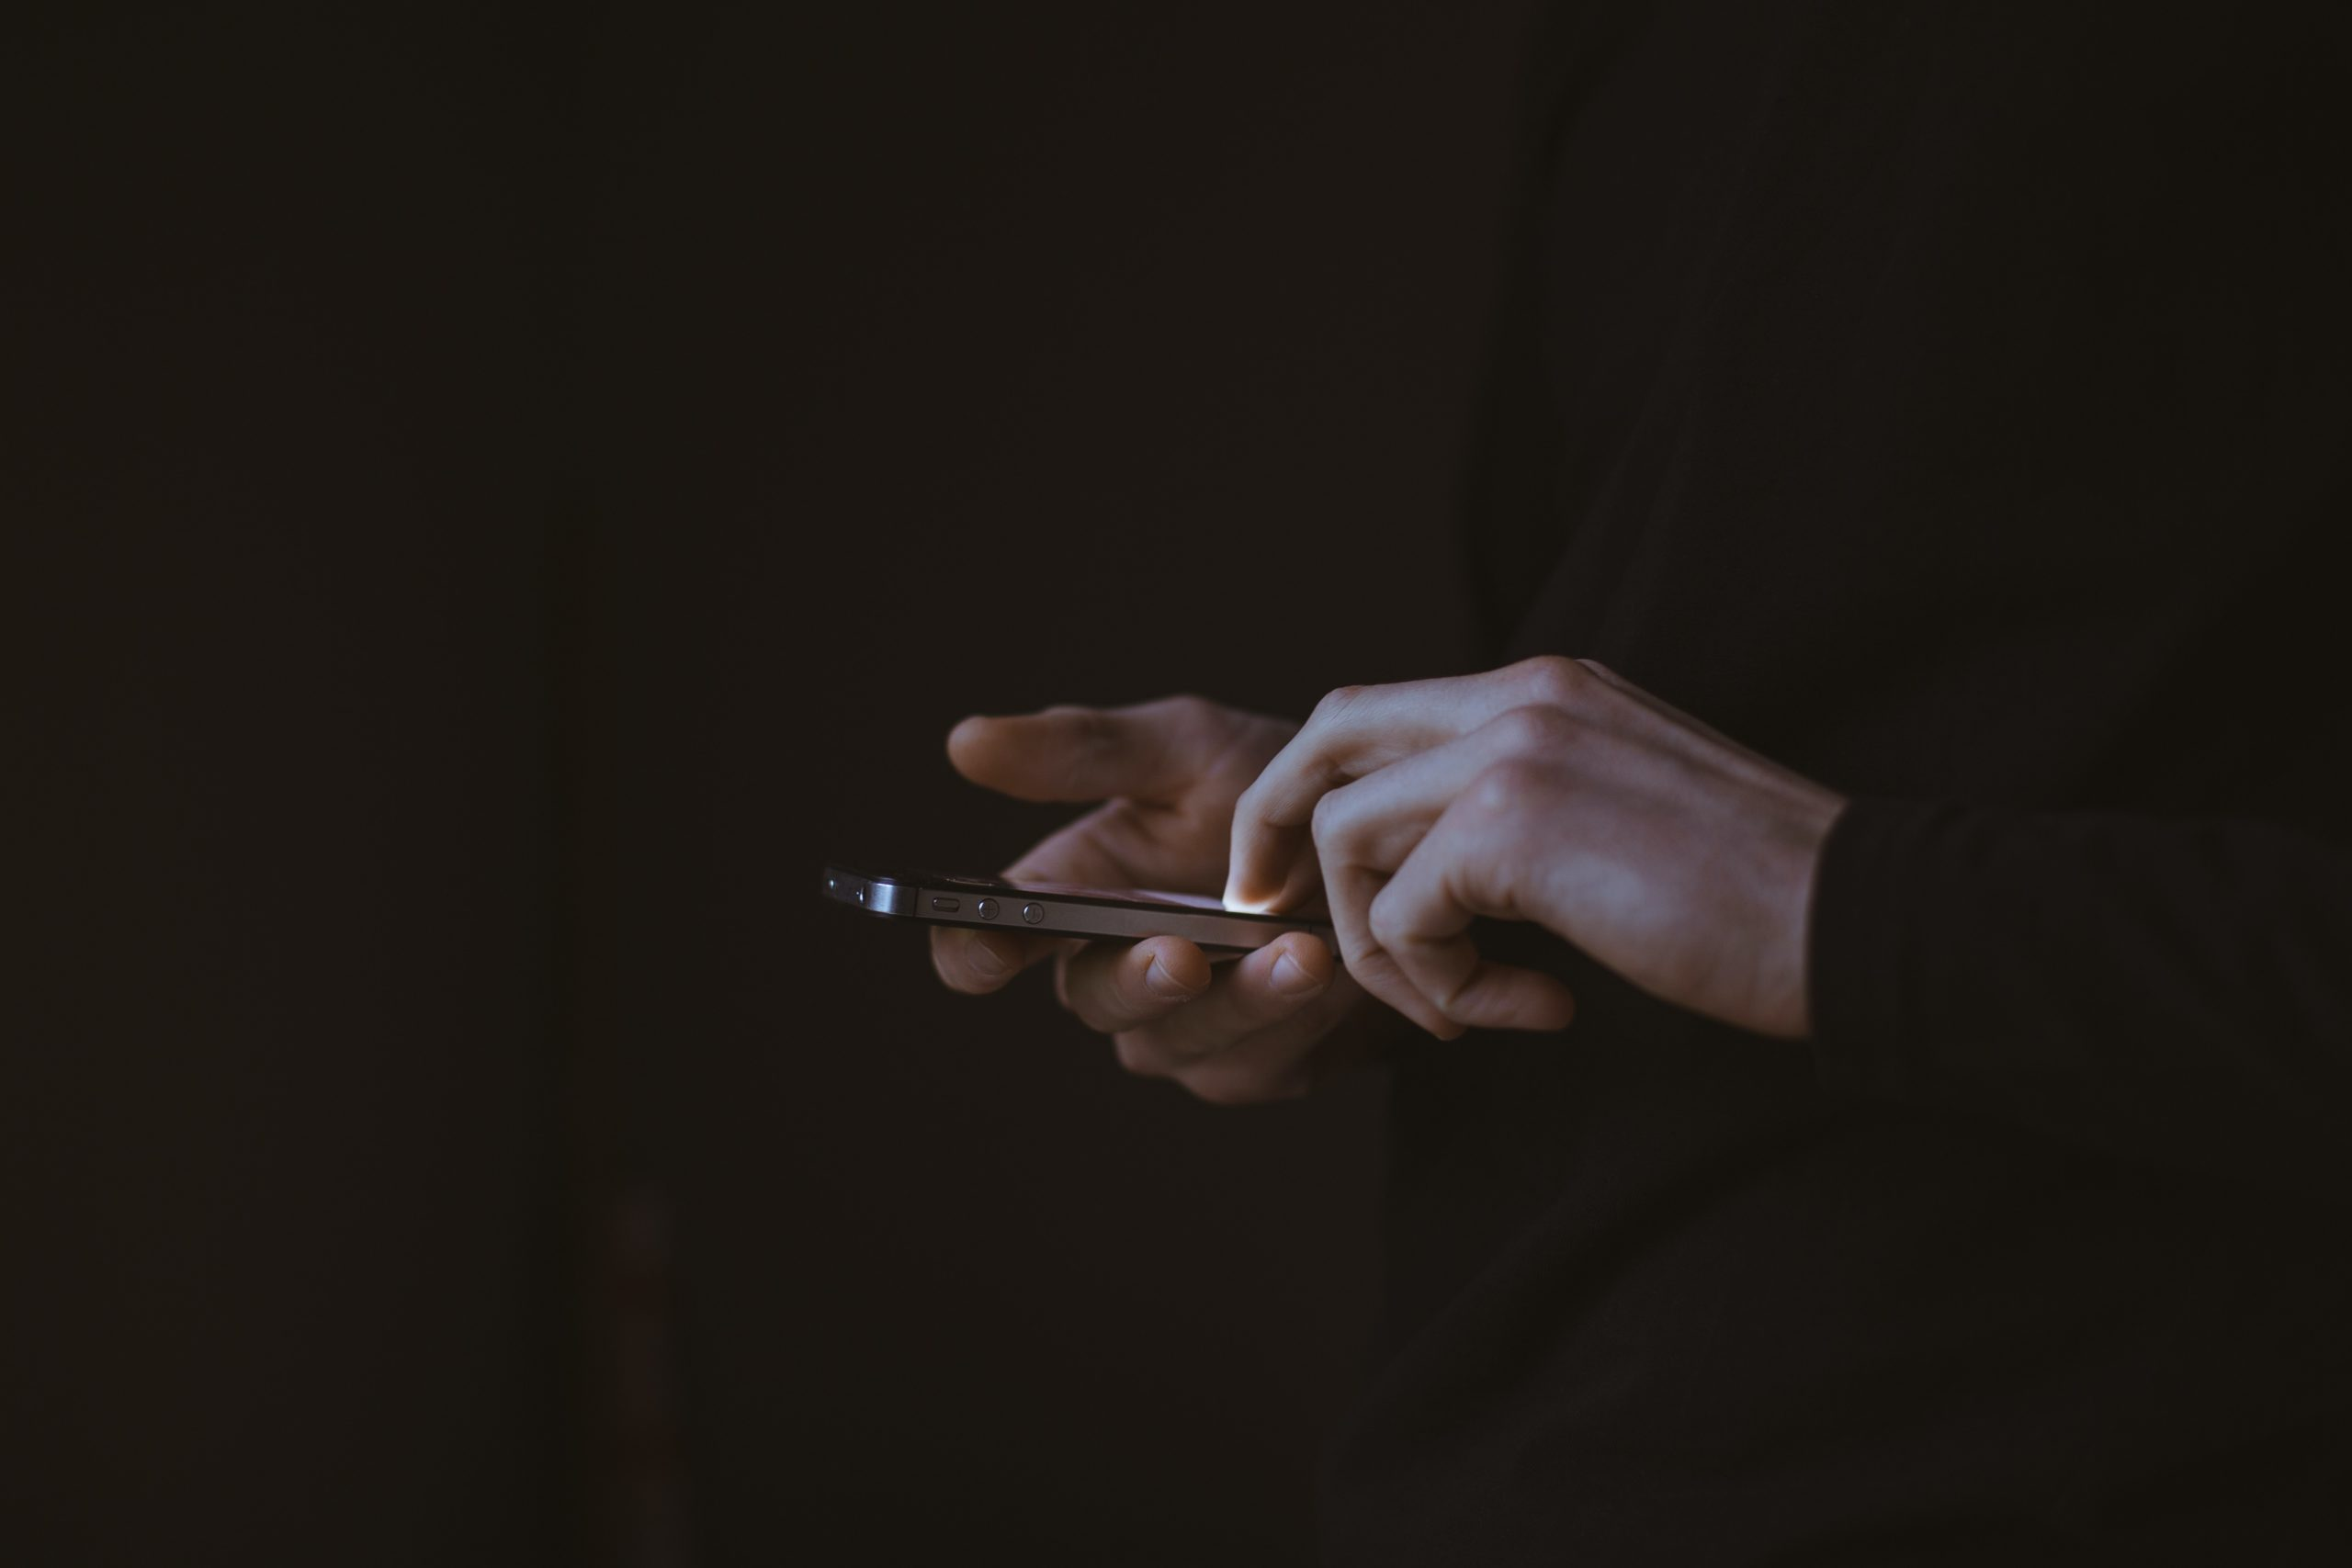 Two hands using a smartphone. Image by Gilles Lambert on Unsplash